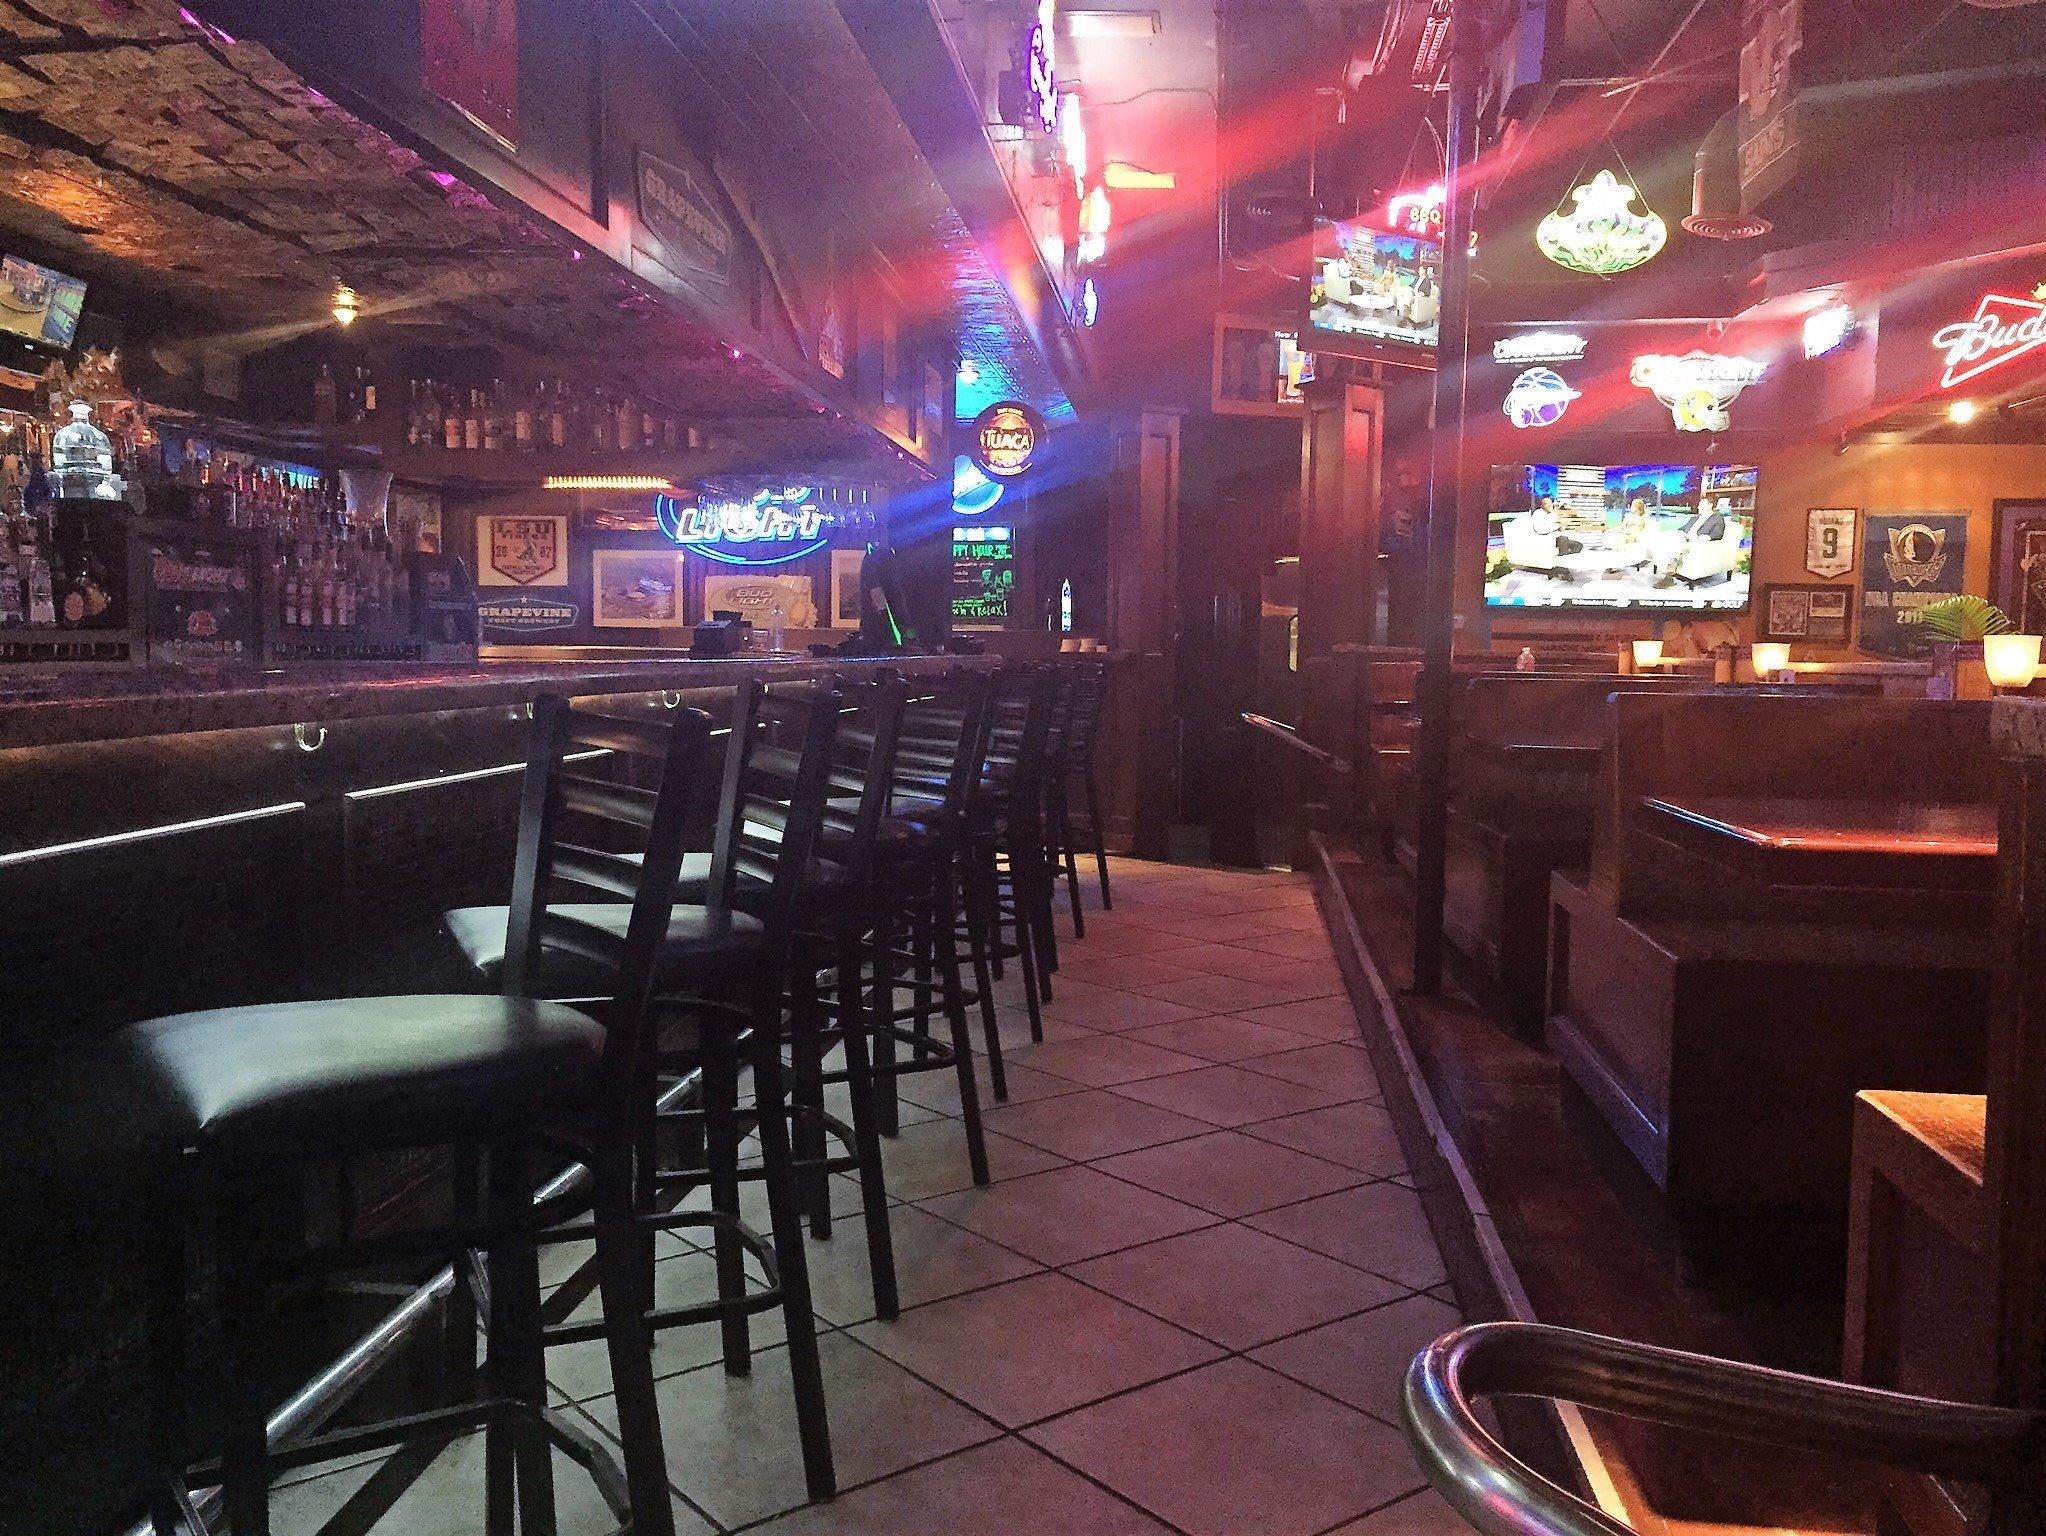 The Quarter Bar & Grill image 36